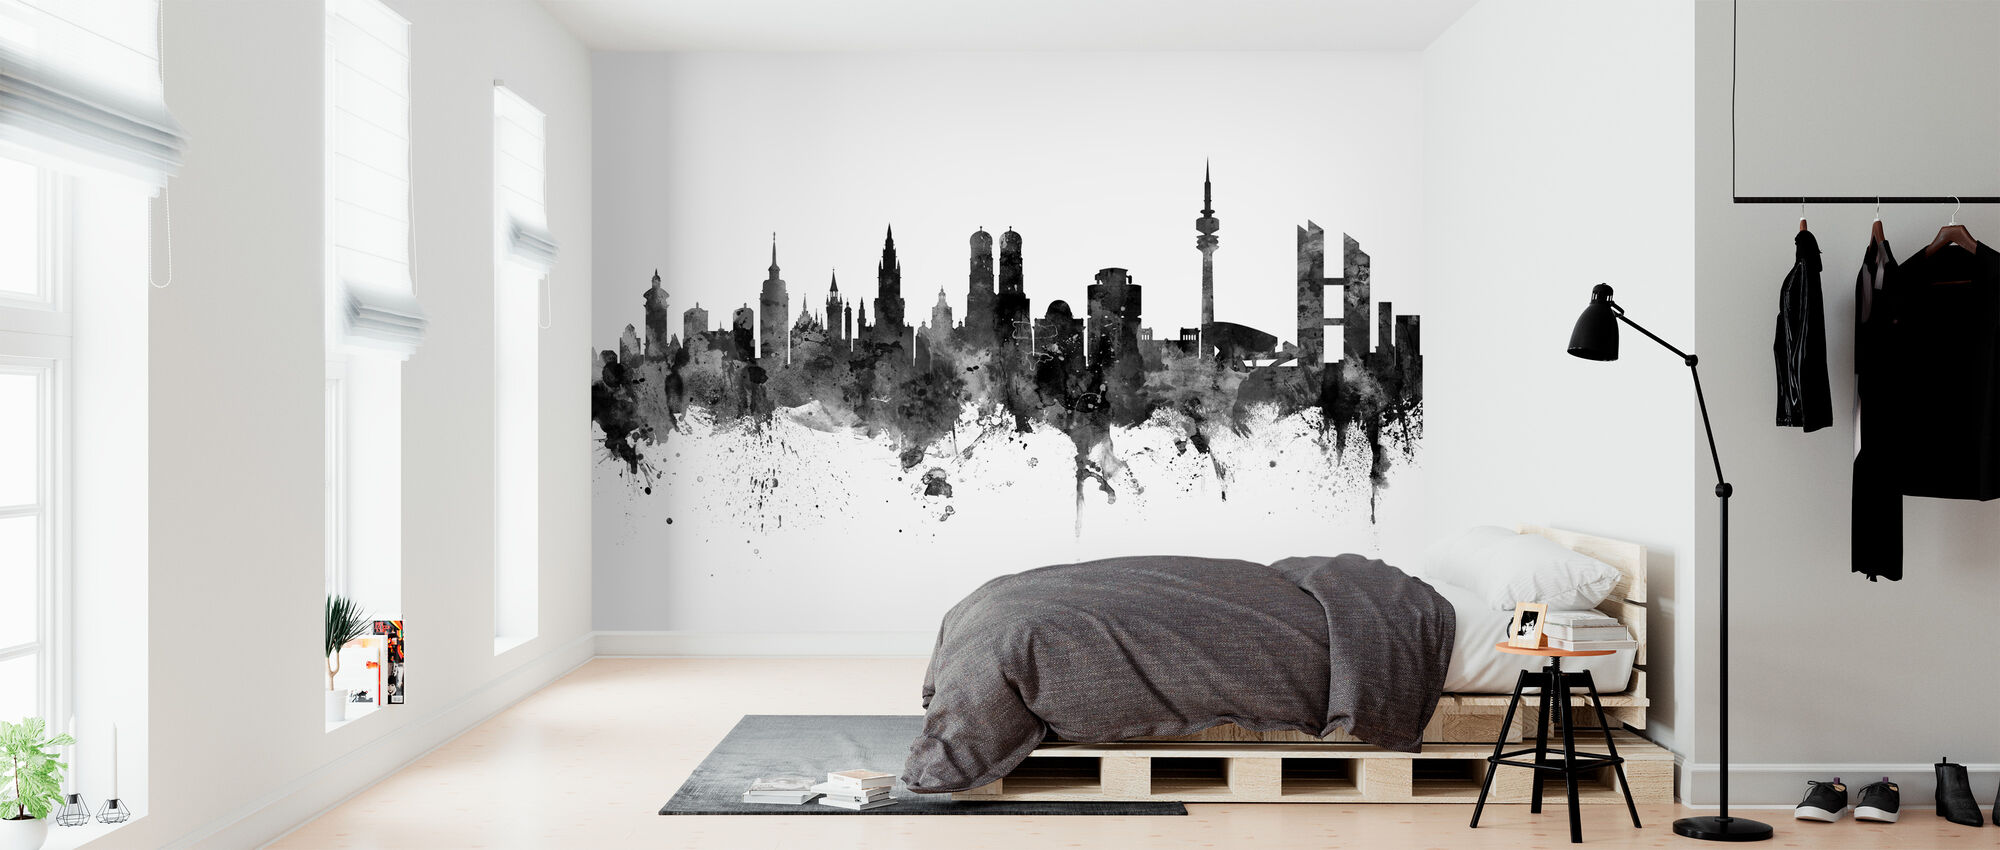 Munich Skyline, black and white - Wallpaper - Bedroom